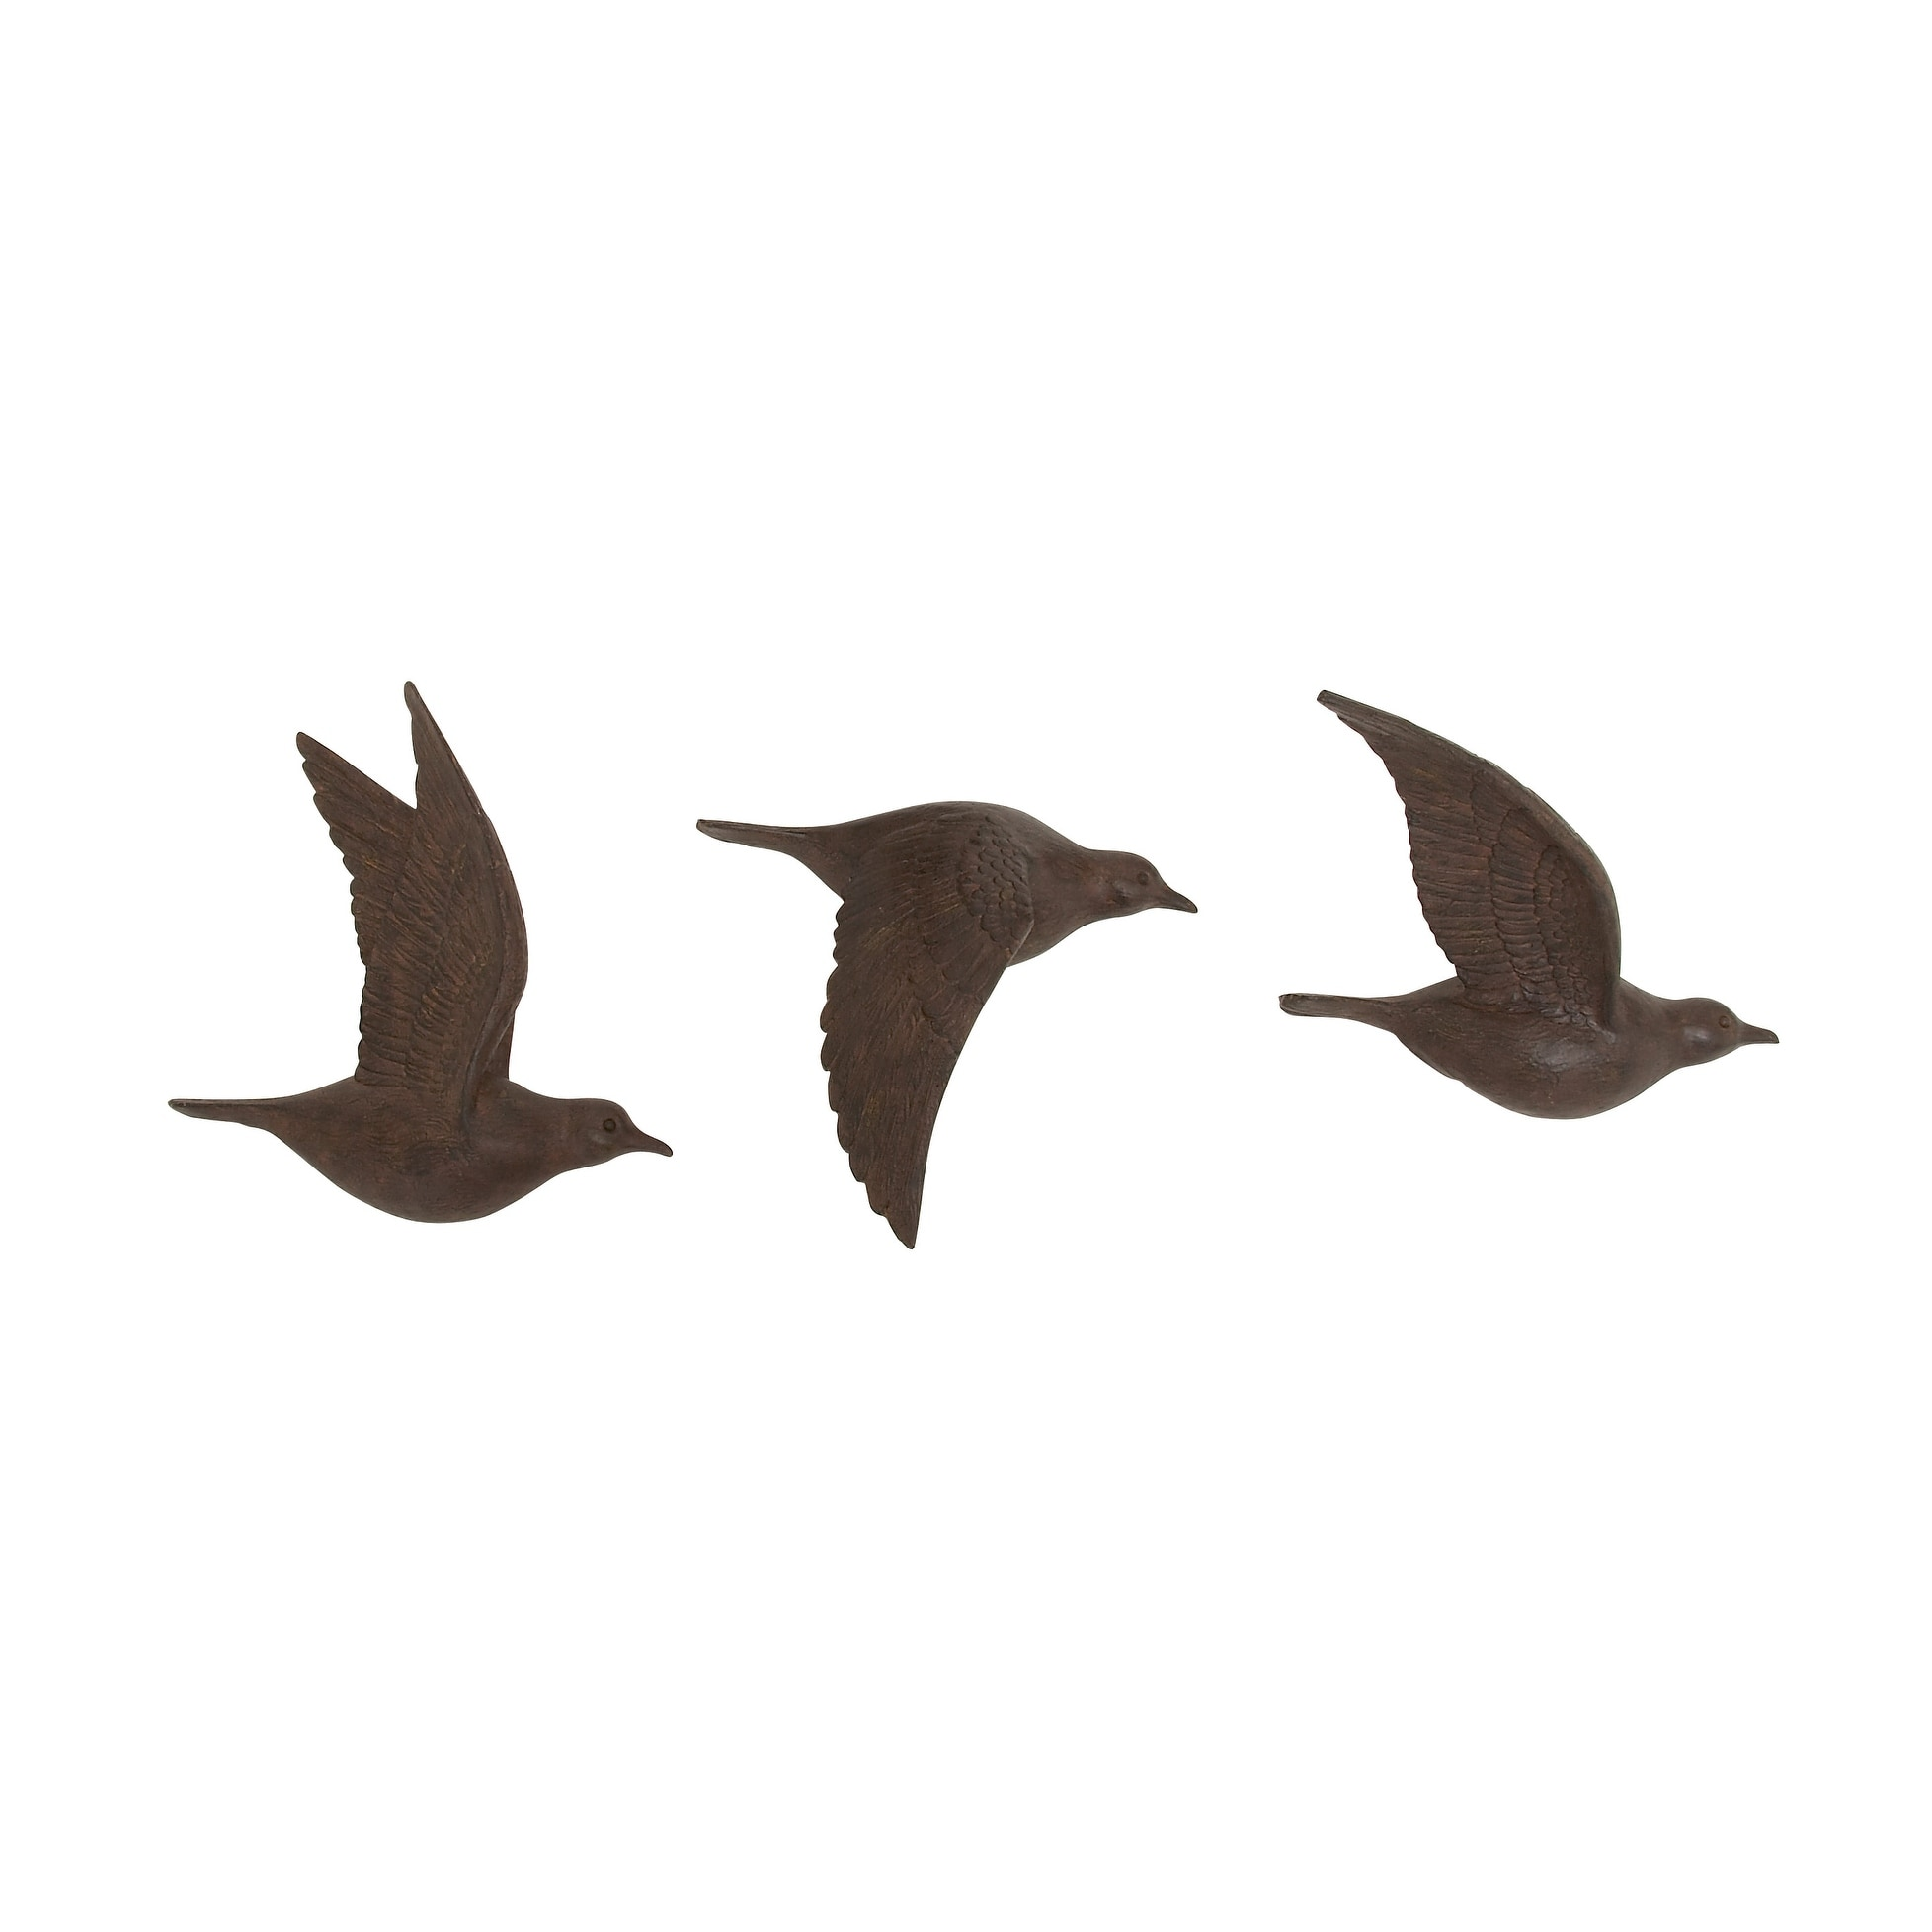 Shop For Copper Grove Sharbot 3 Piece Brown Polystone Bird Wall Decor Set Get Free Delivery On Everything At Overstock Your Online Art Gallery Shop Get 5 In Rewards With Club O 21147979